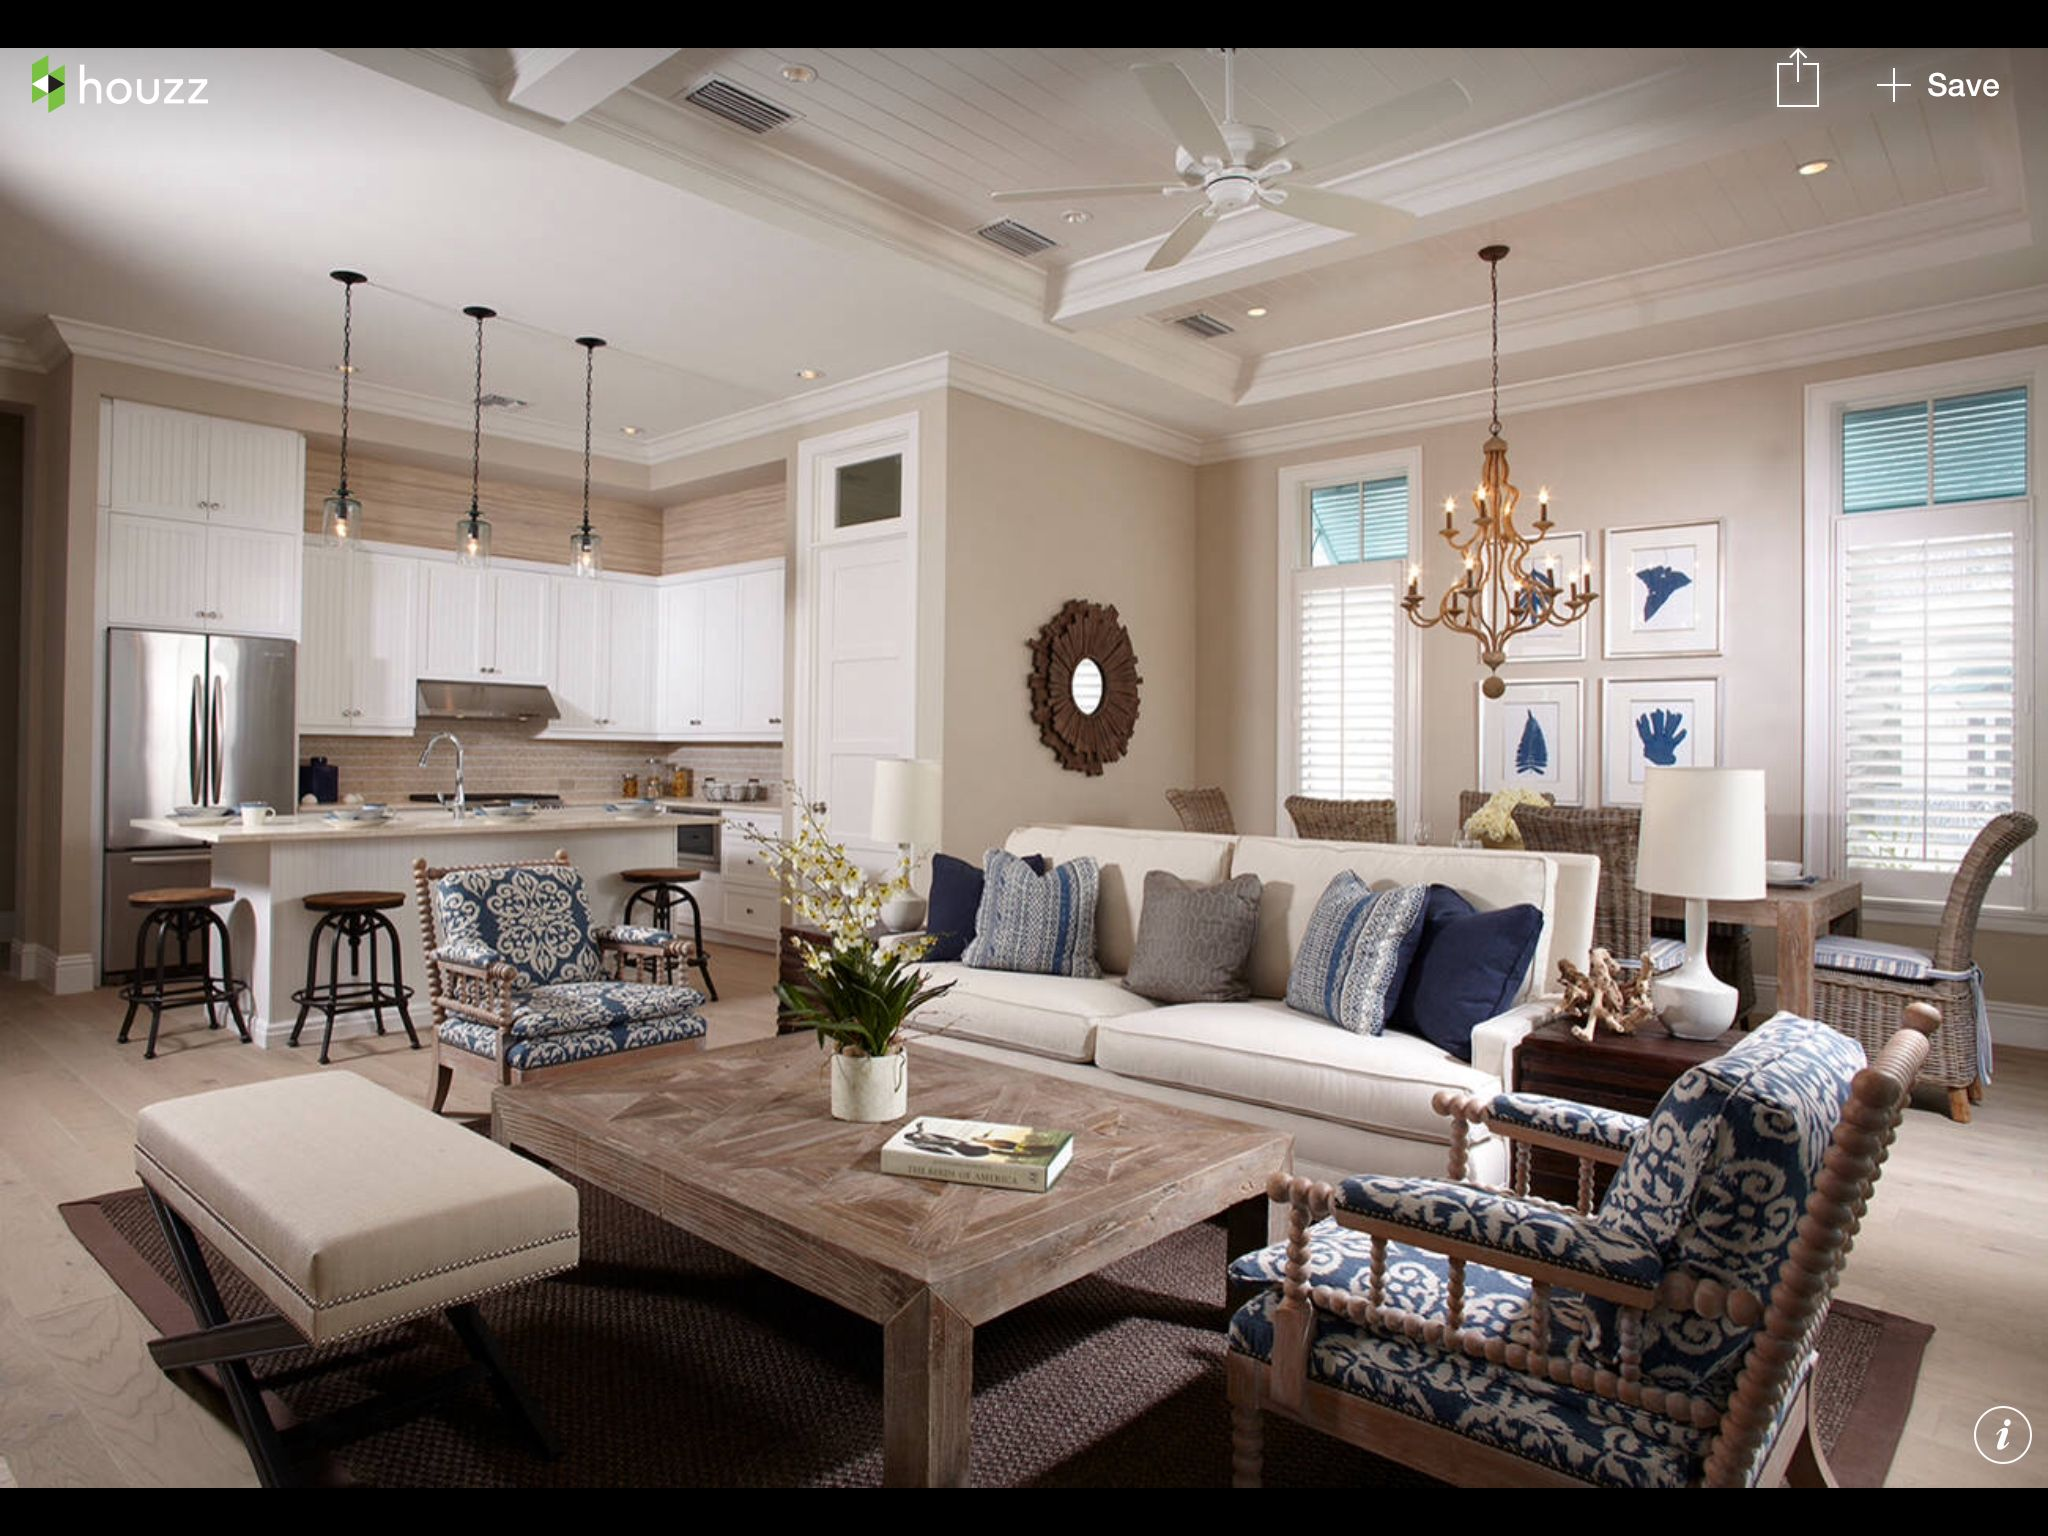 Living Room Design Houzz Delectable Living Room Inspiration From Houzz  House Inspiration  Pinterest Design Decoration